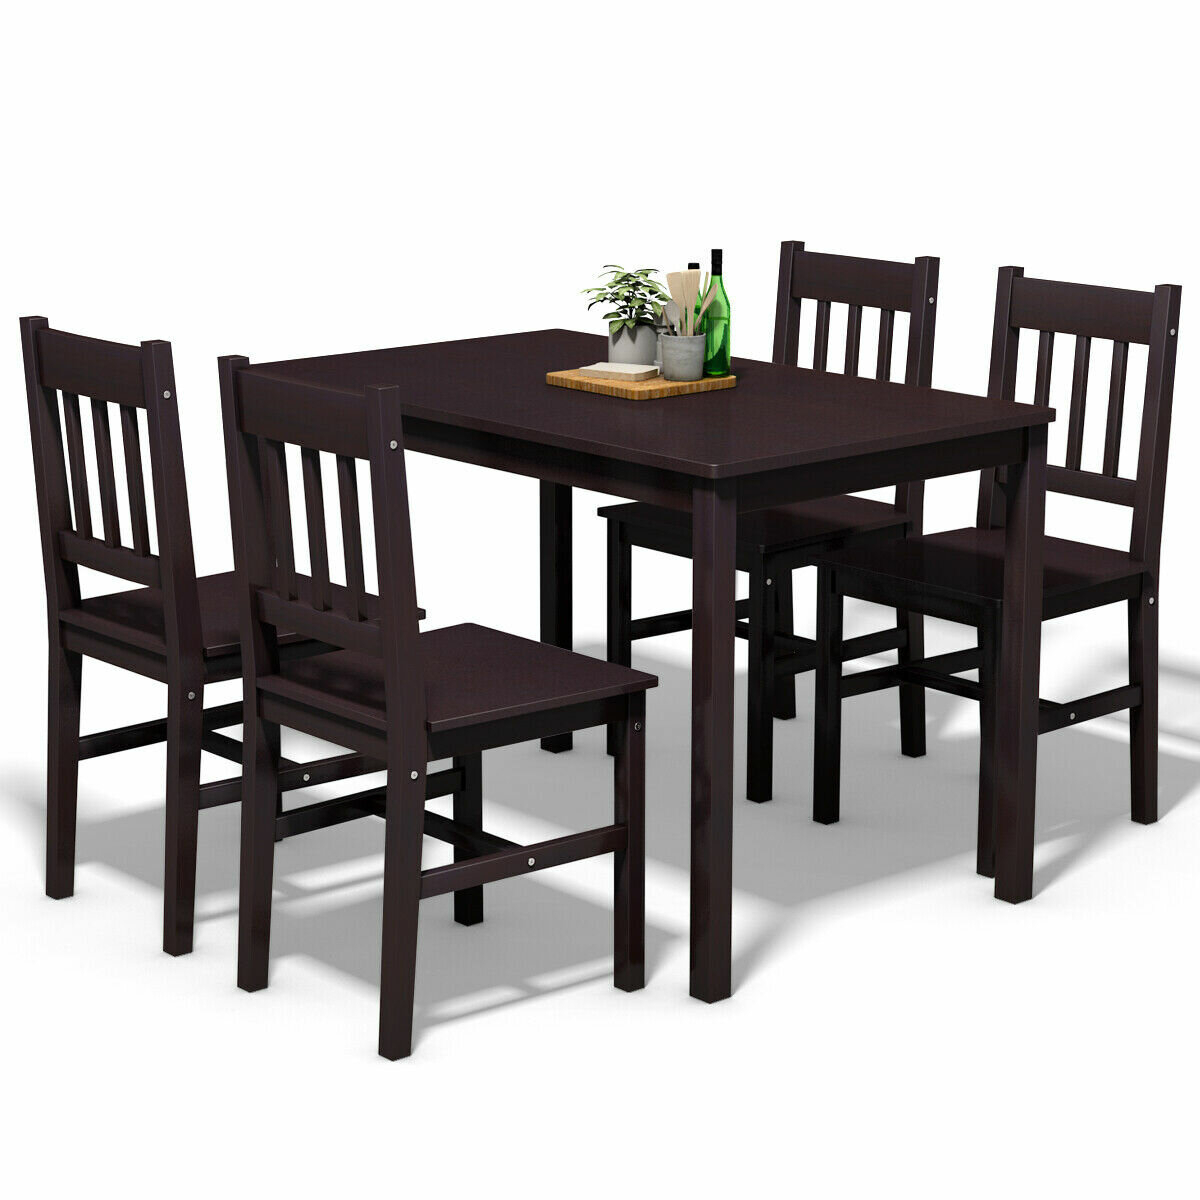 Most Current Winston Porter Sundberg 5 Piece Solid Wood Dining Set & Reviews Within Miskell 5 Piece Dining Sets (#11 of 20)